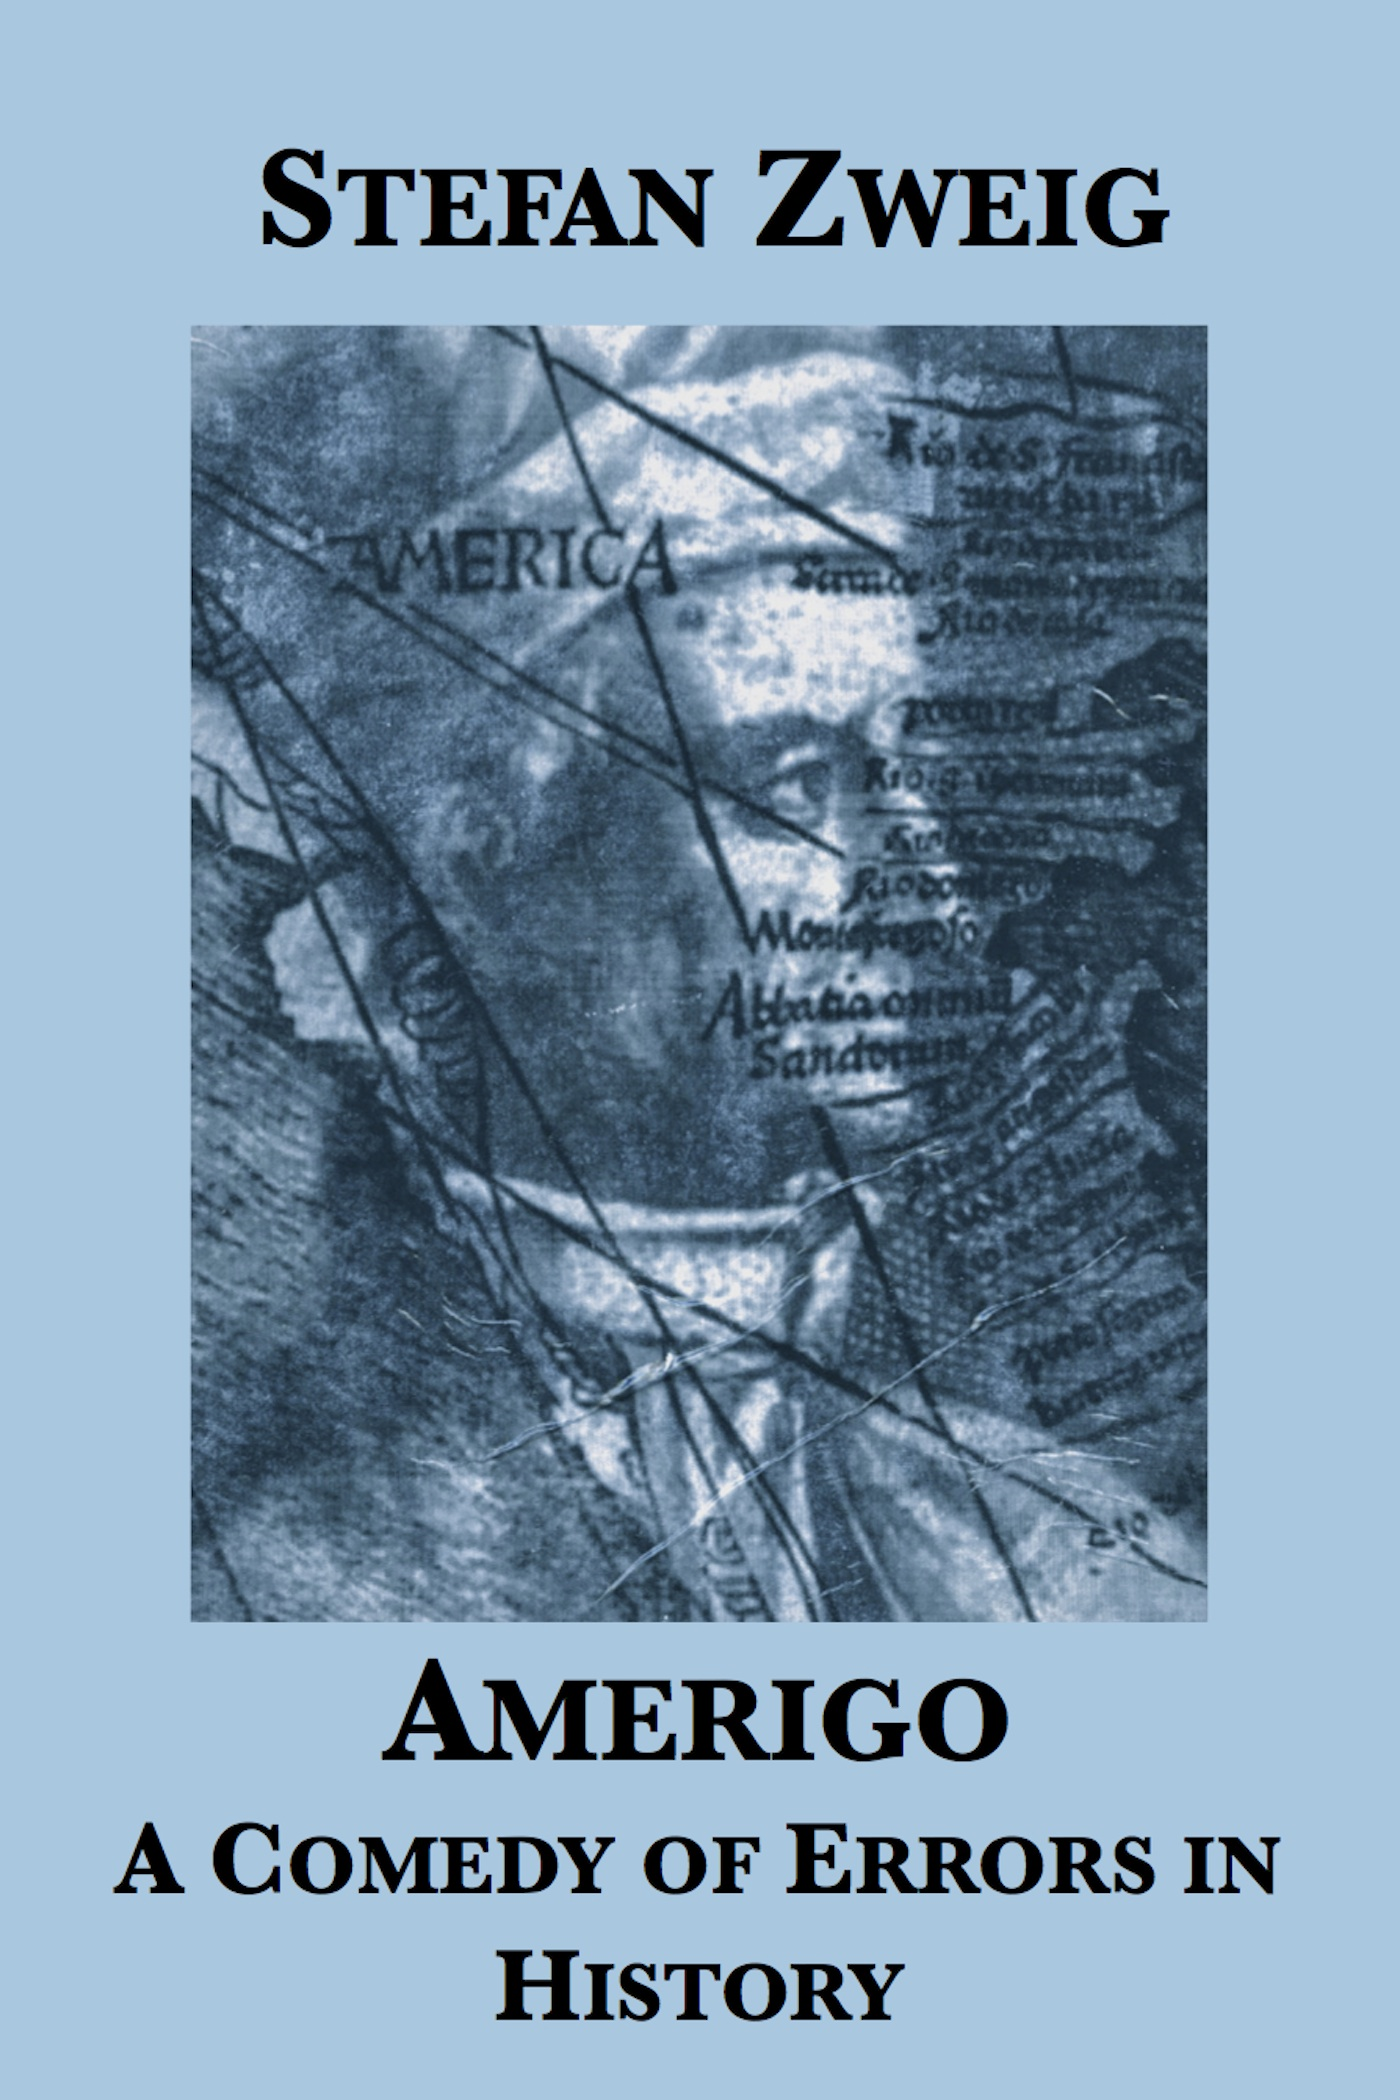 Amerigo: A Comedy of Errors in History